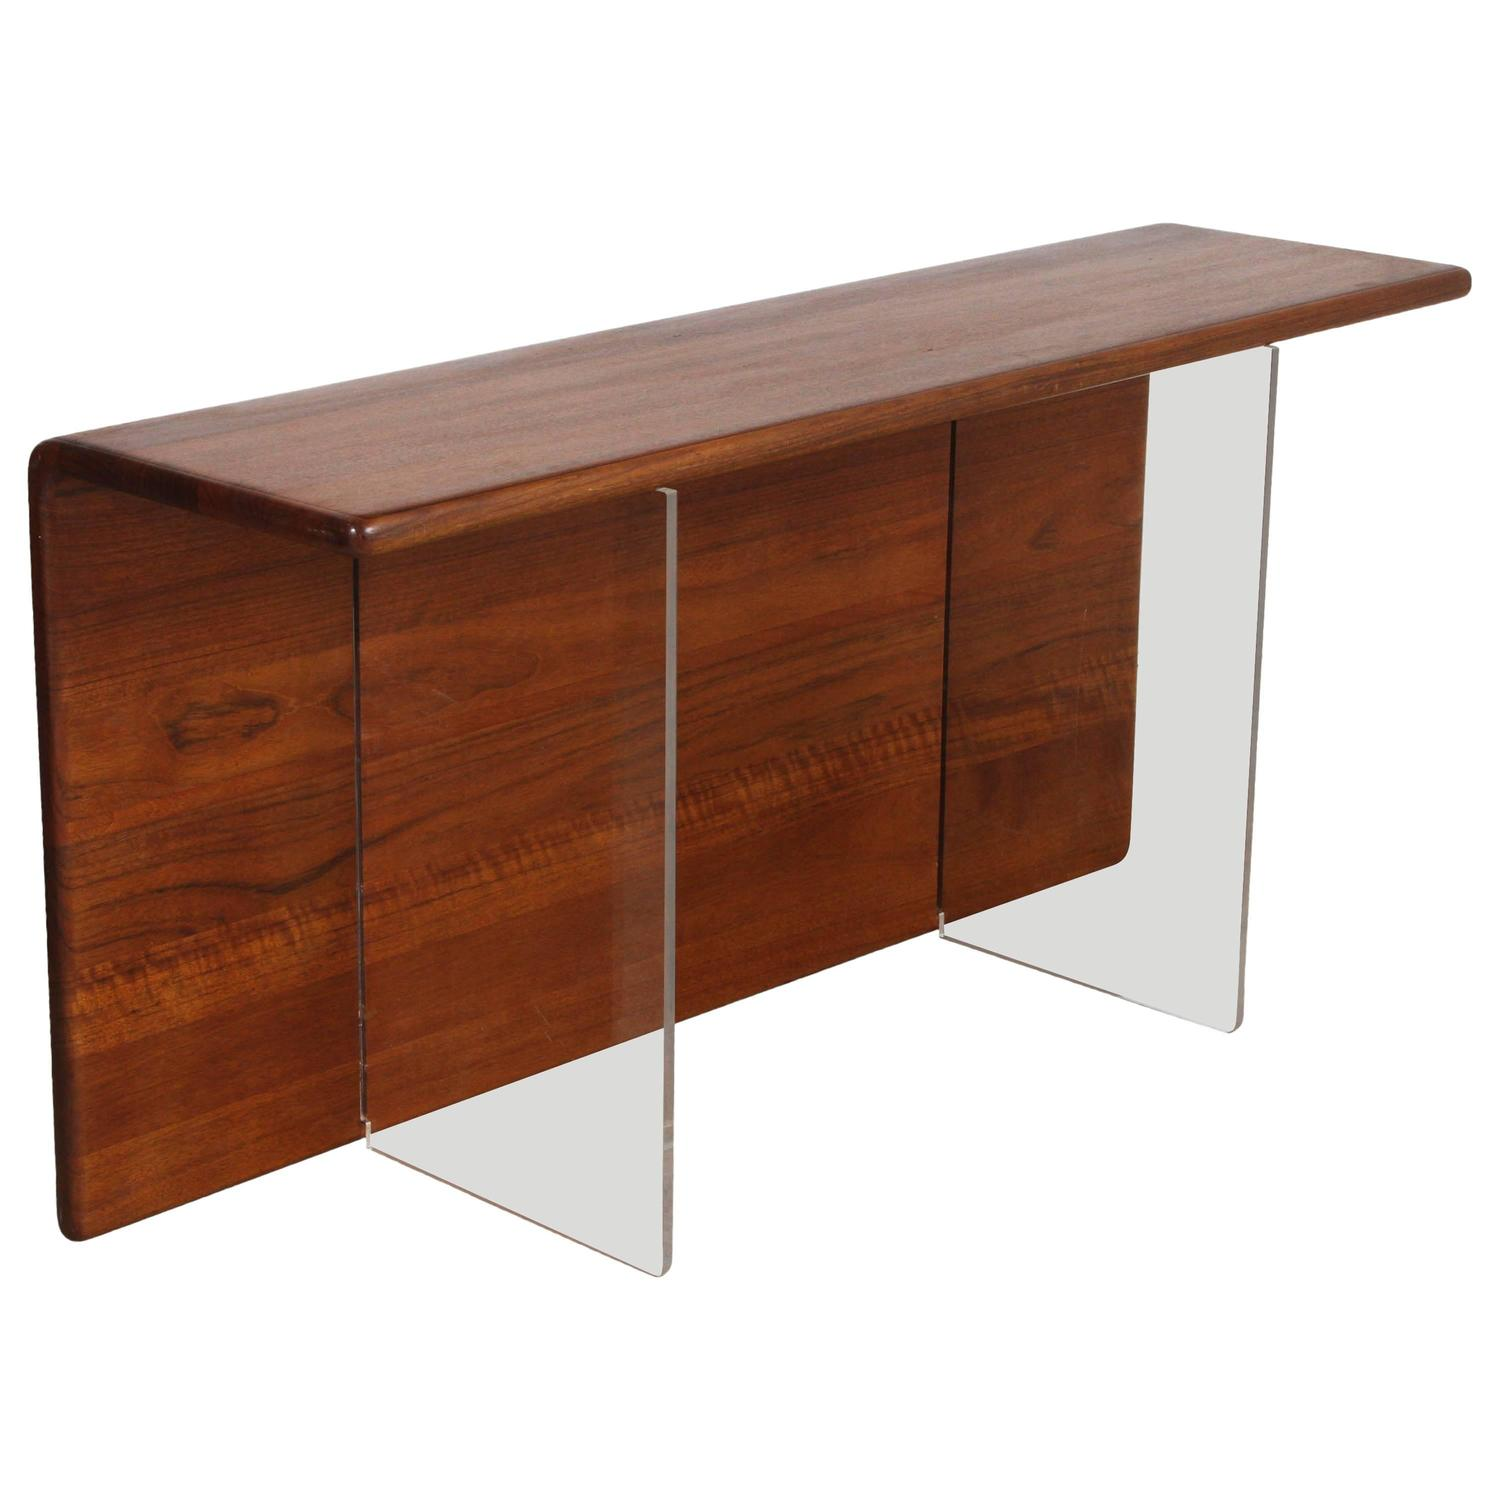 Gerald mccabe convertible cantilever console table or shelving unit for sale - Console convertible table ...